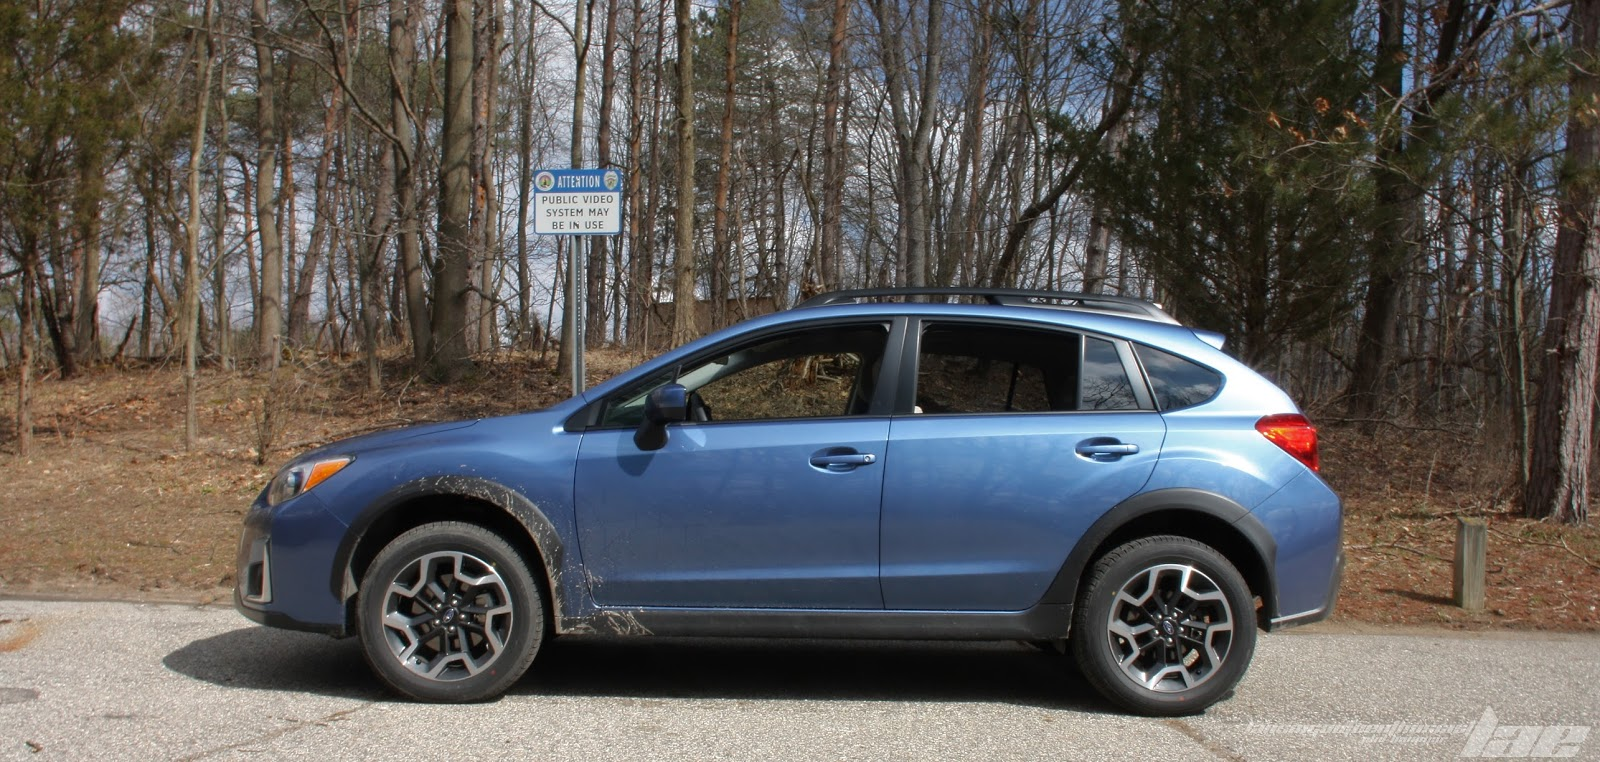 2017 Suv Under 23000 New 2015 Nissan Rogue Prices